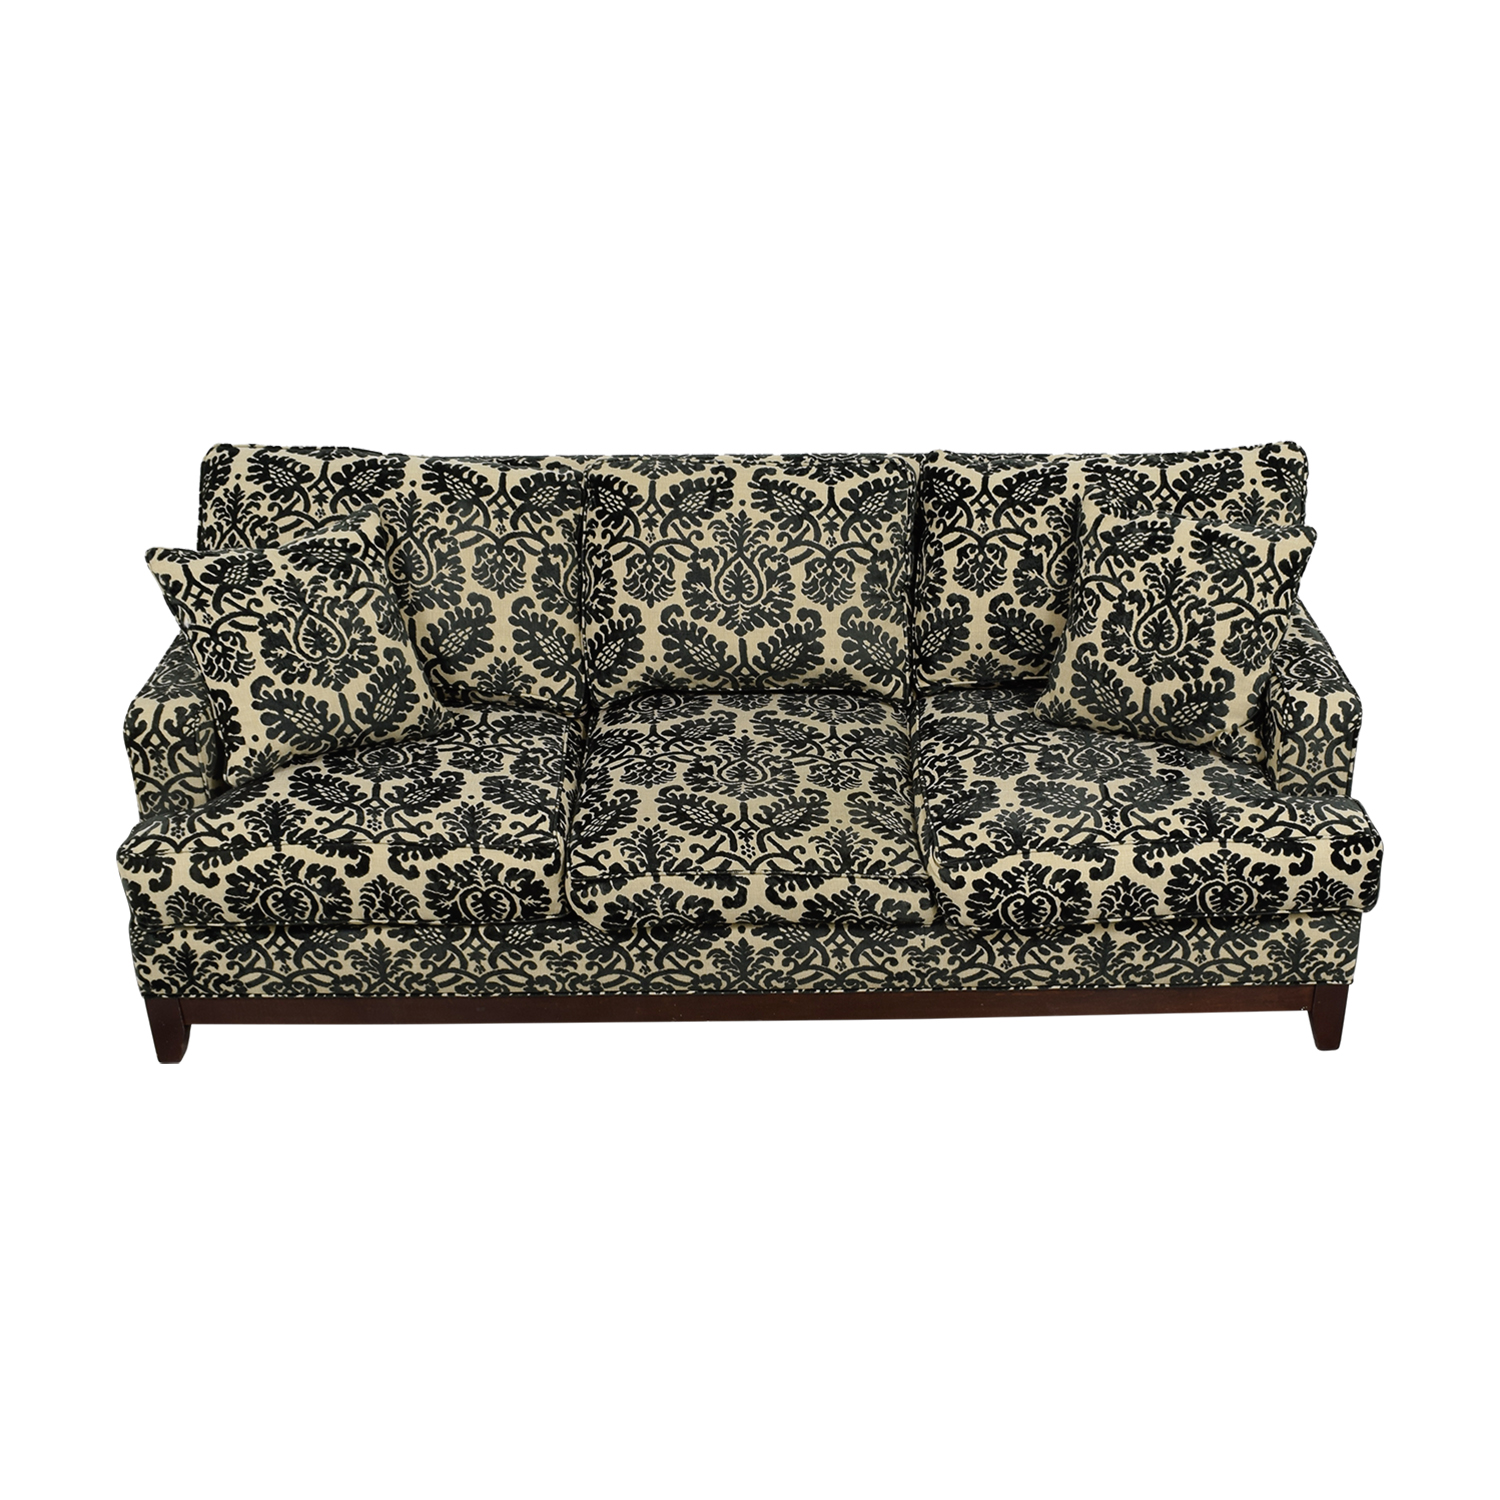 shop Ethan Allen Ethan Allen Arcata Black and Beige Three-Cushion Sofa online